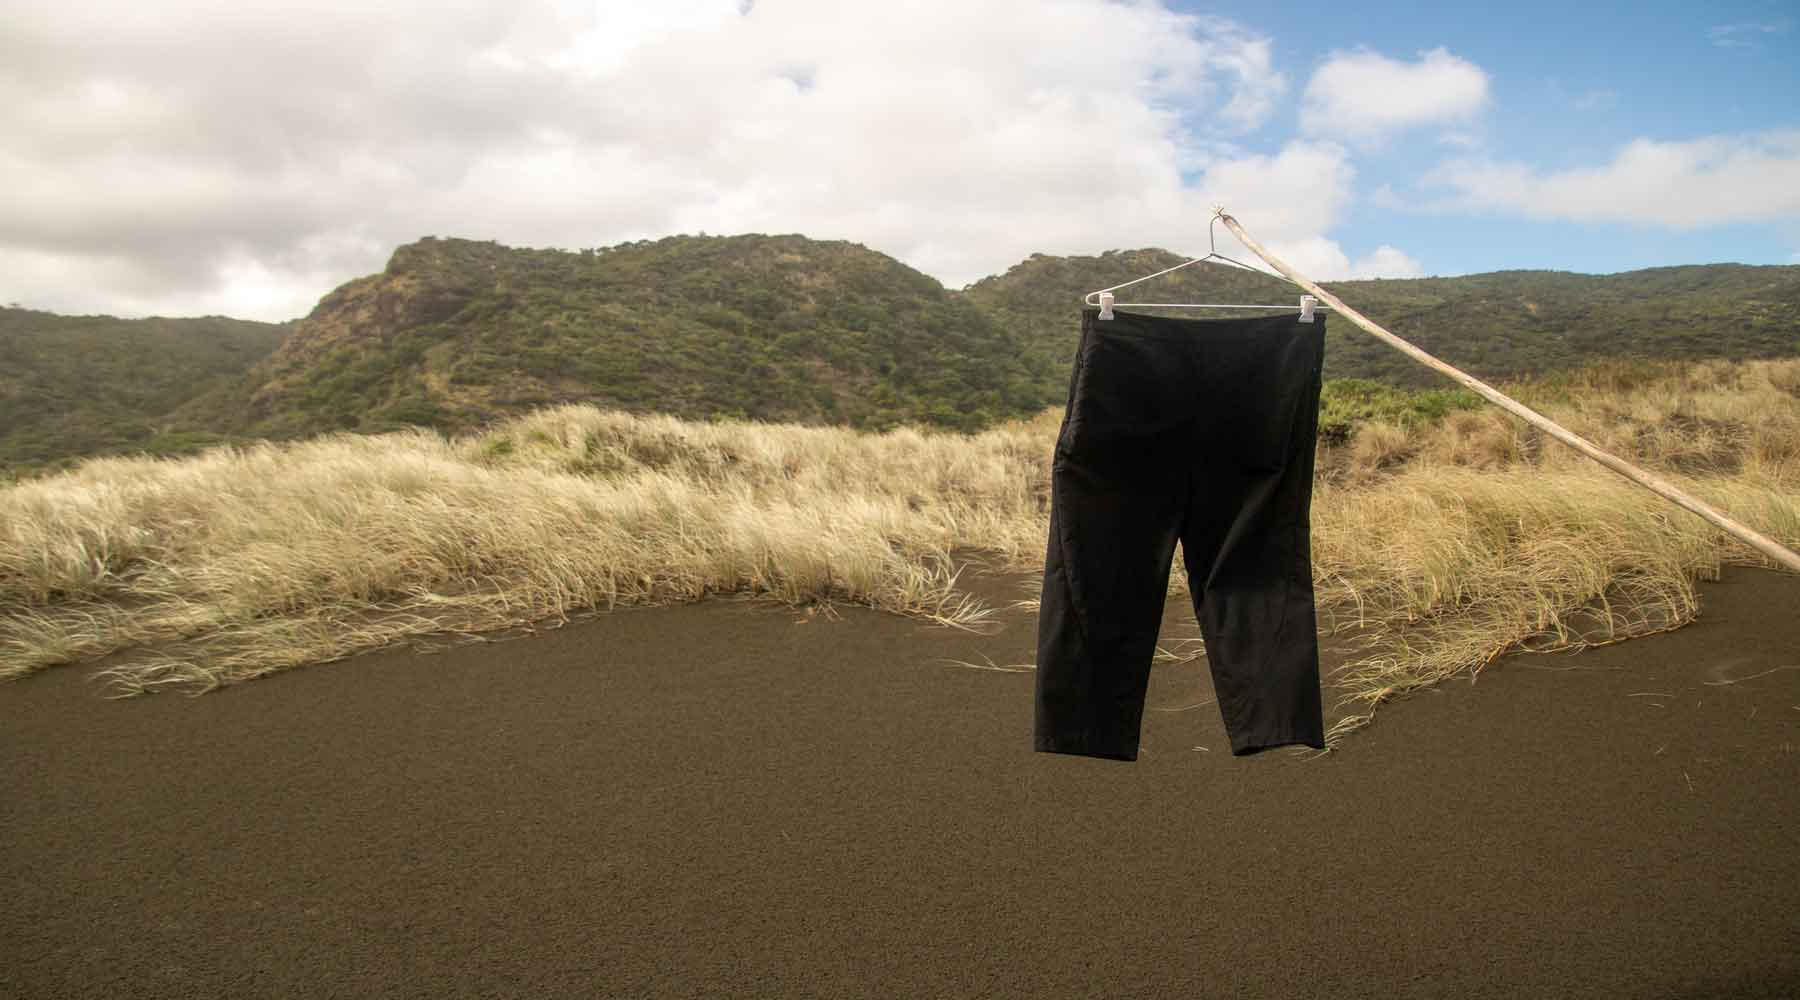 Asmuss Panelled Trousers hanging in front of the black sand dune of Karekare New Zealand